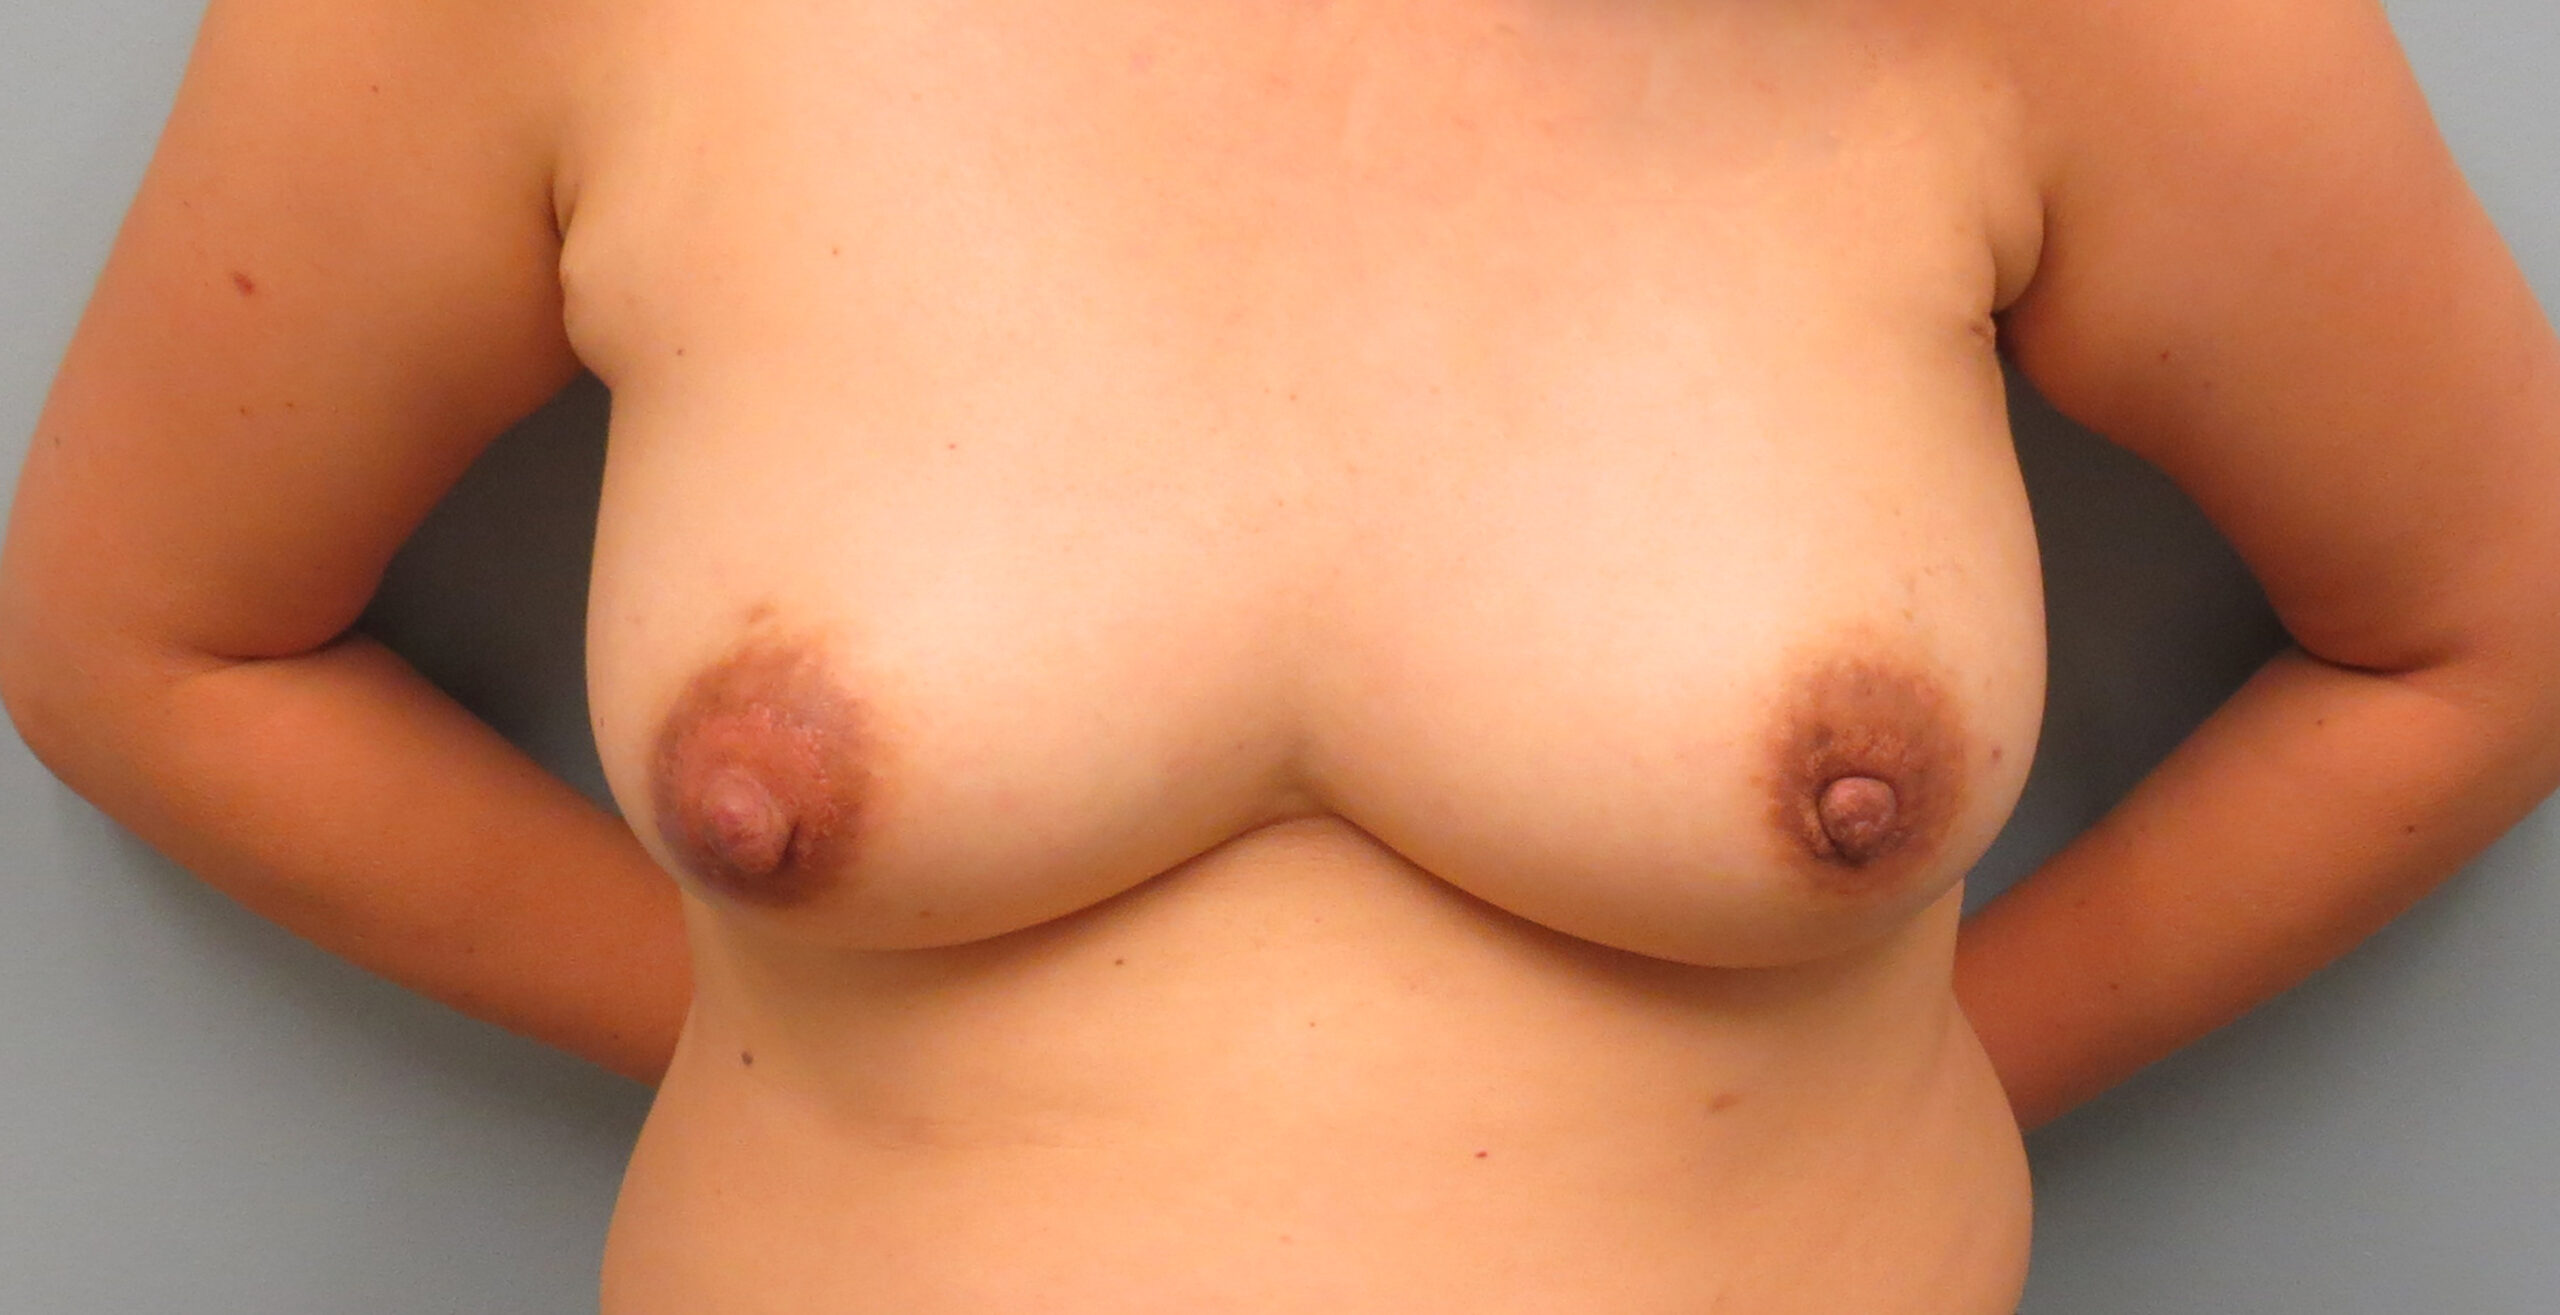 Woman who had a mastectomy with DIEP reconstruction she is standing with her top off to show what her breasts looked like before the mastectomy